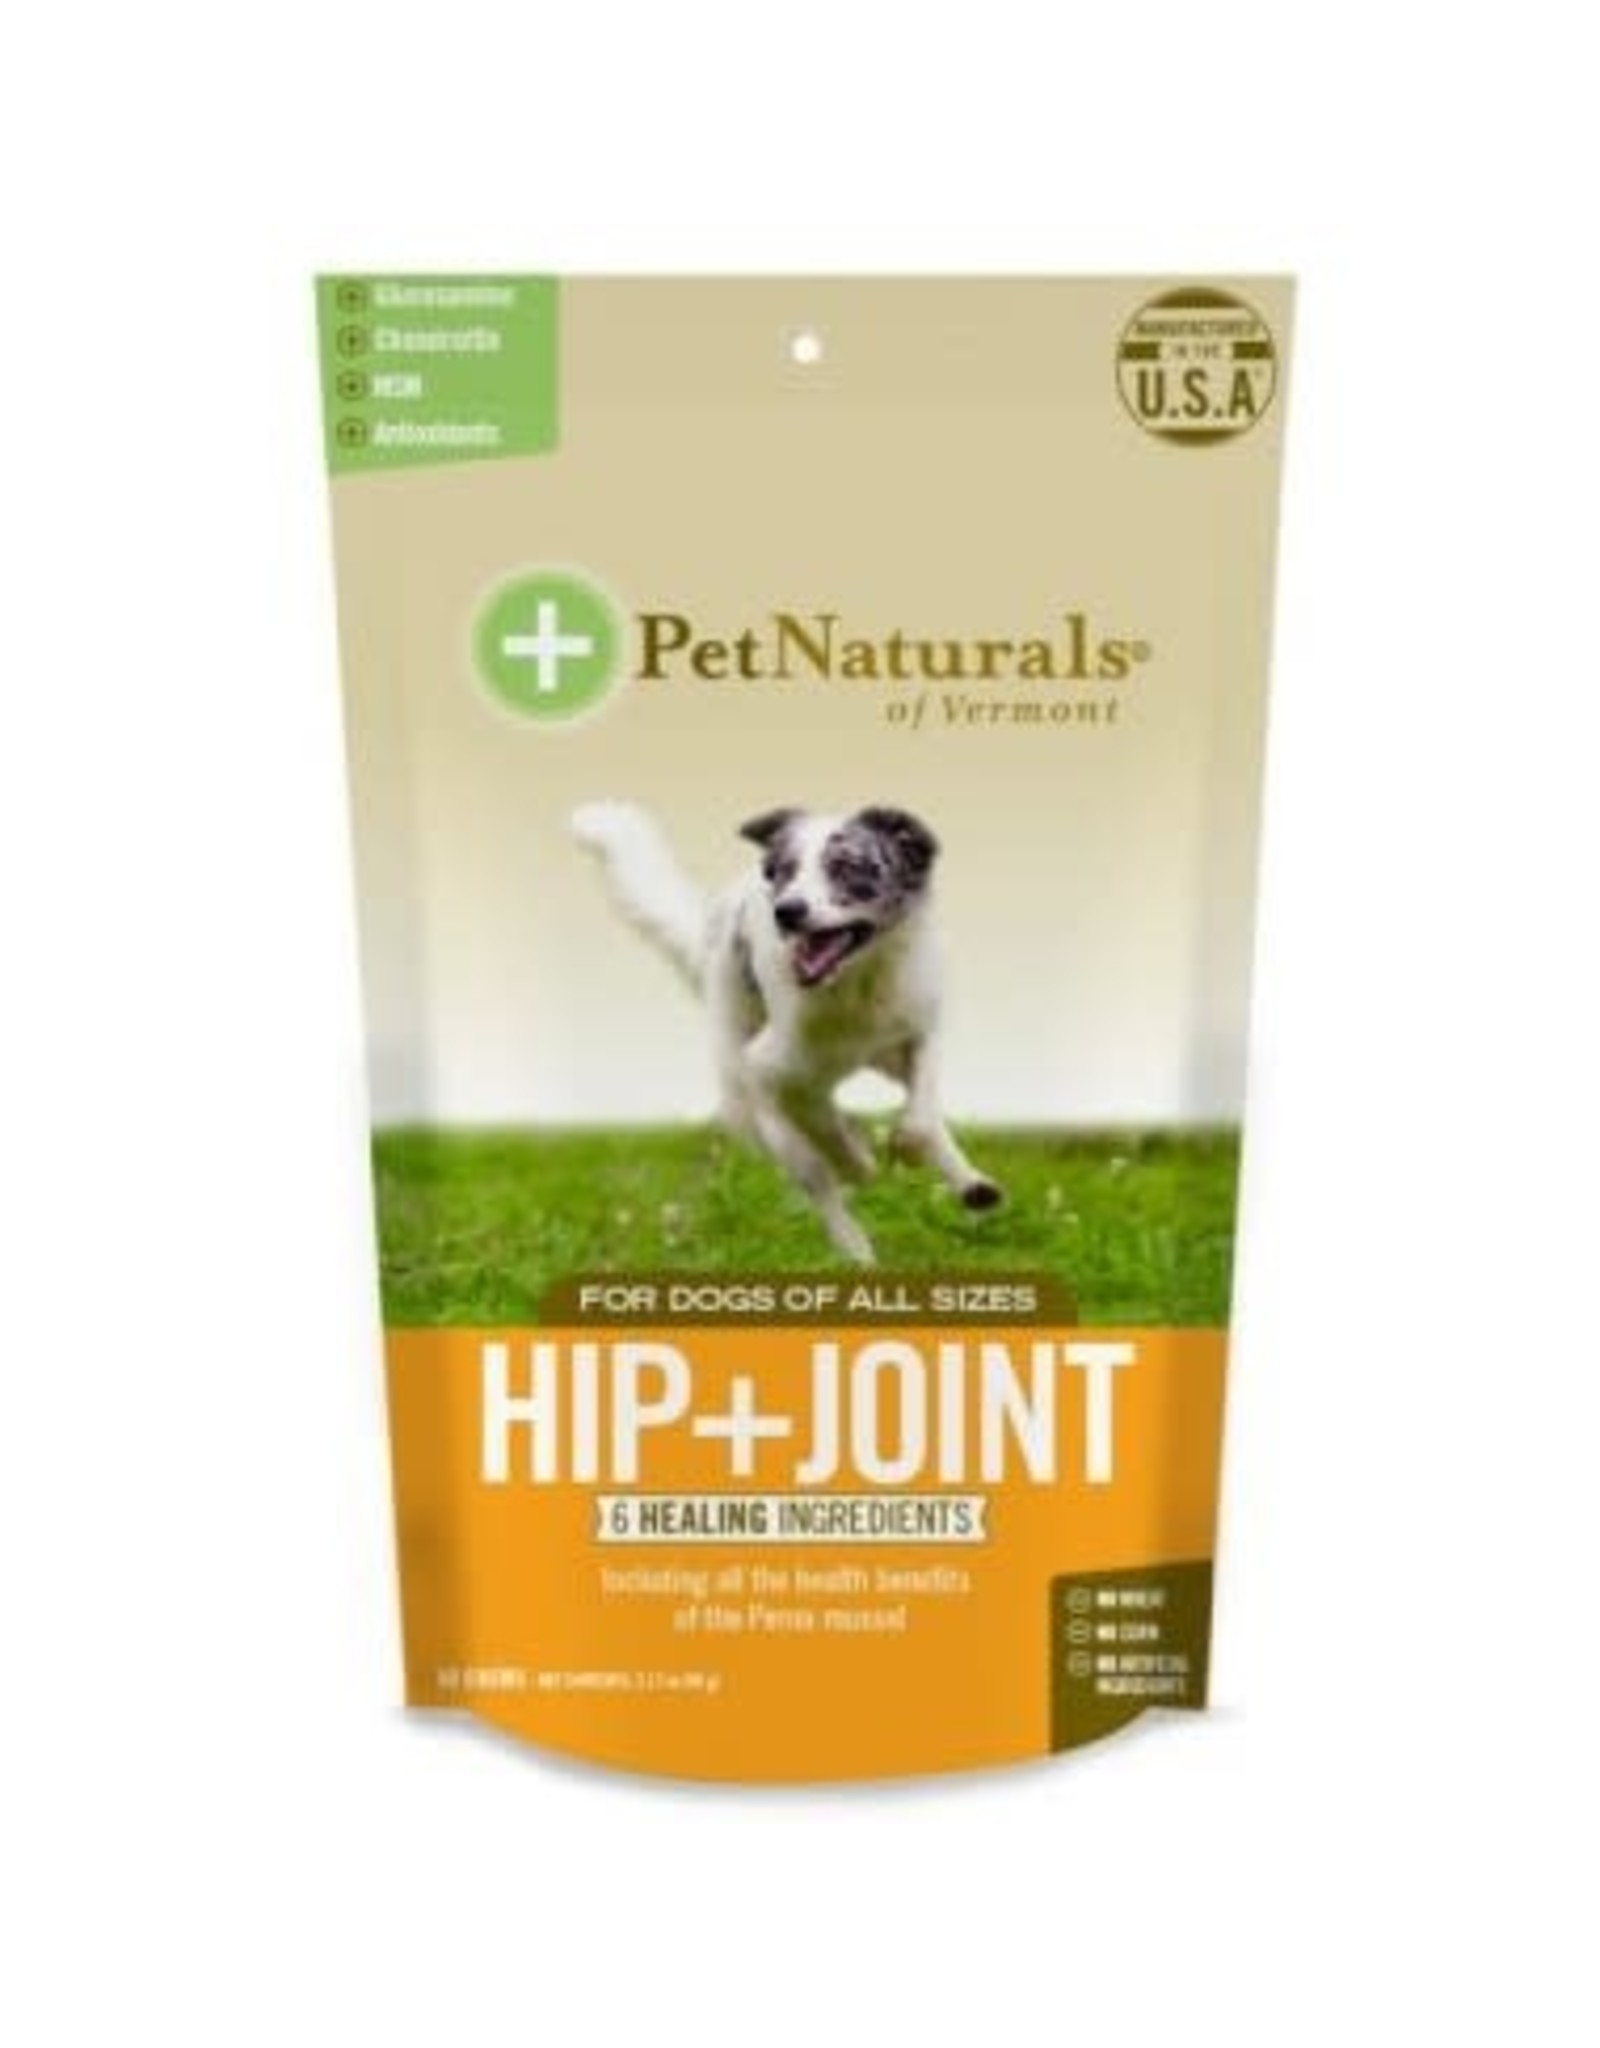 Pet Naturals of Vermont Hip & Joint Chews for Dogs 60ct